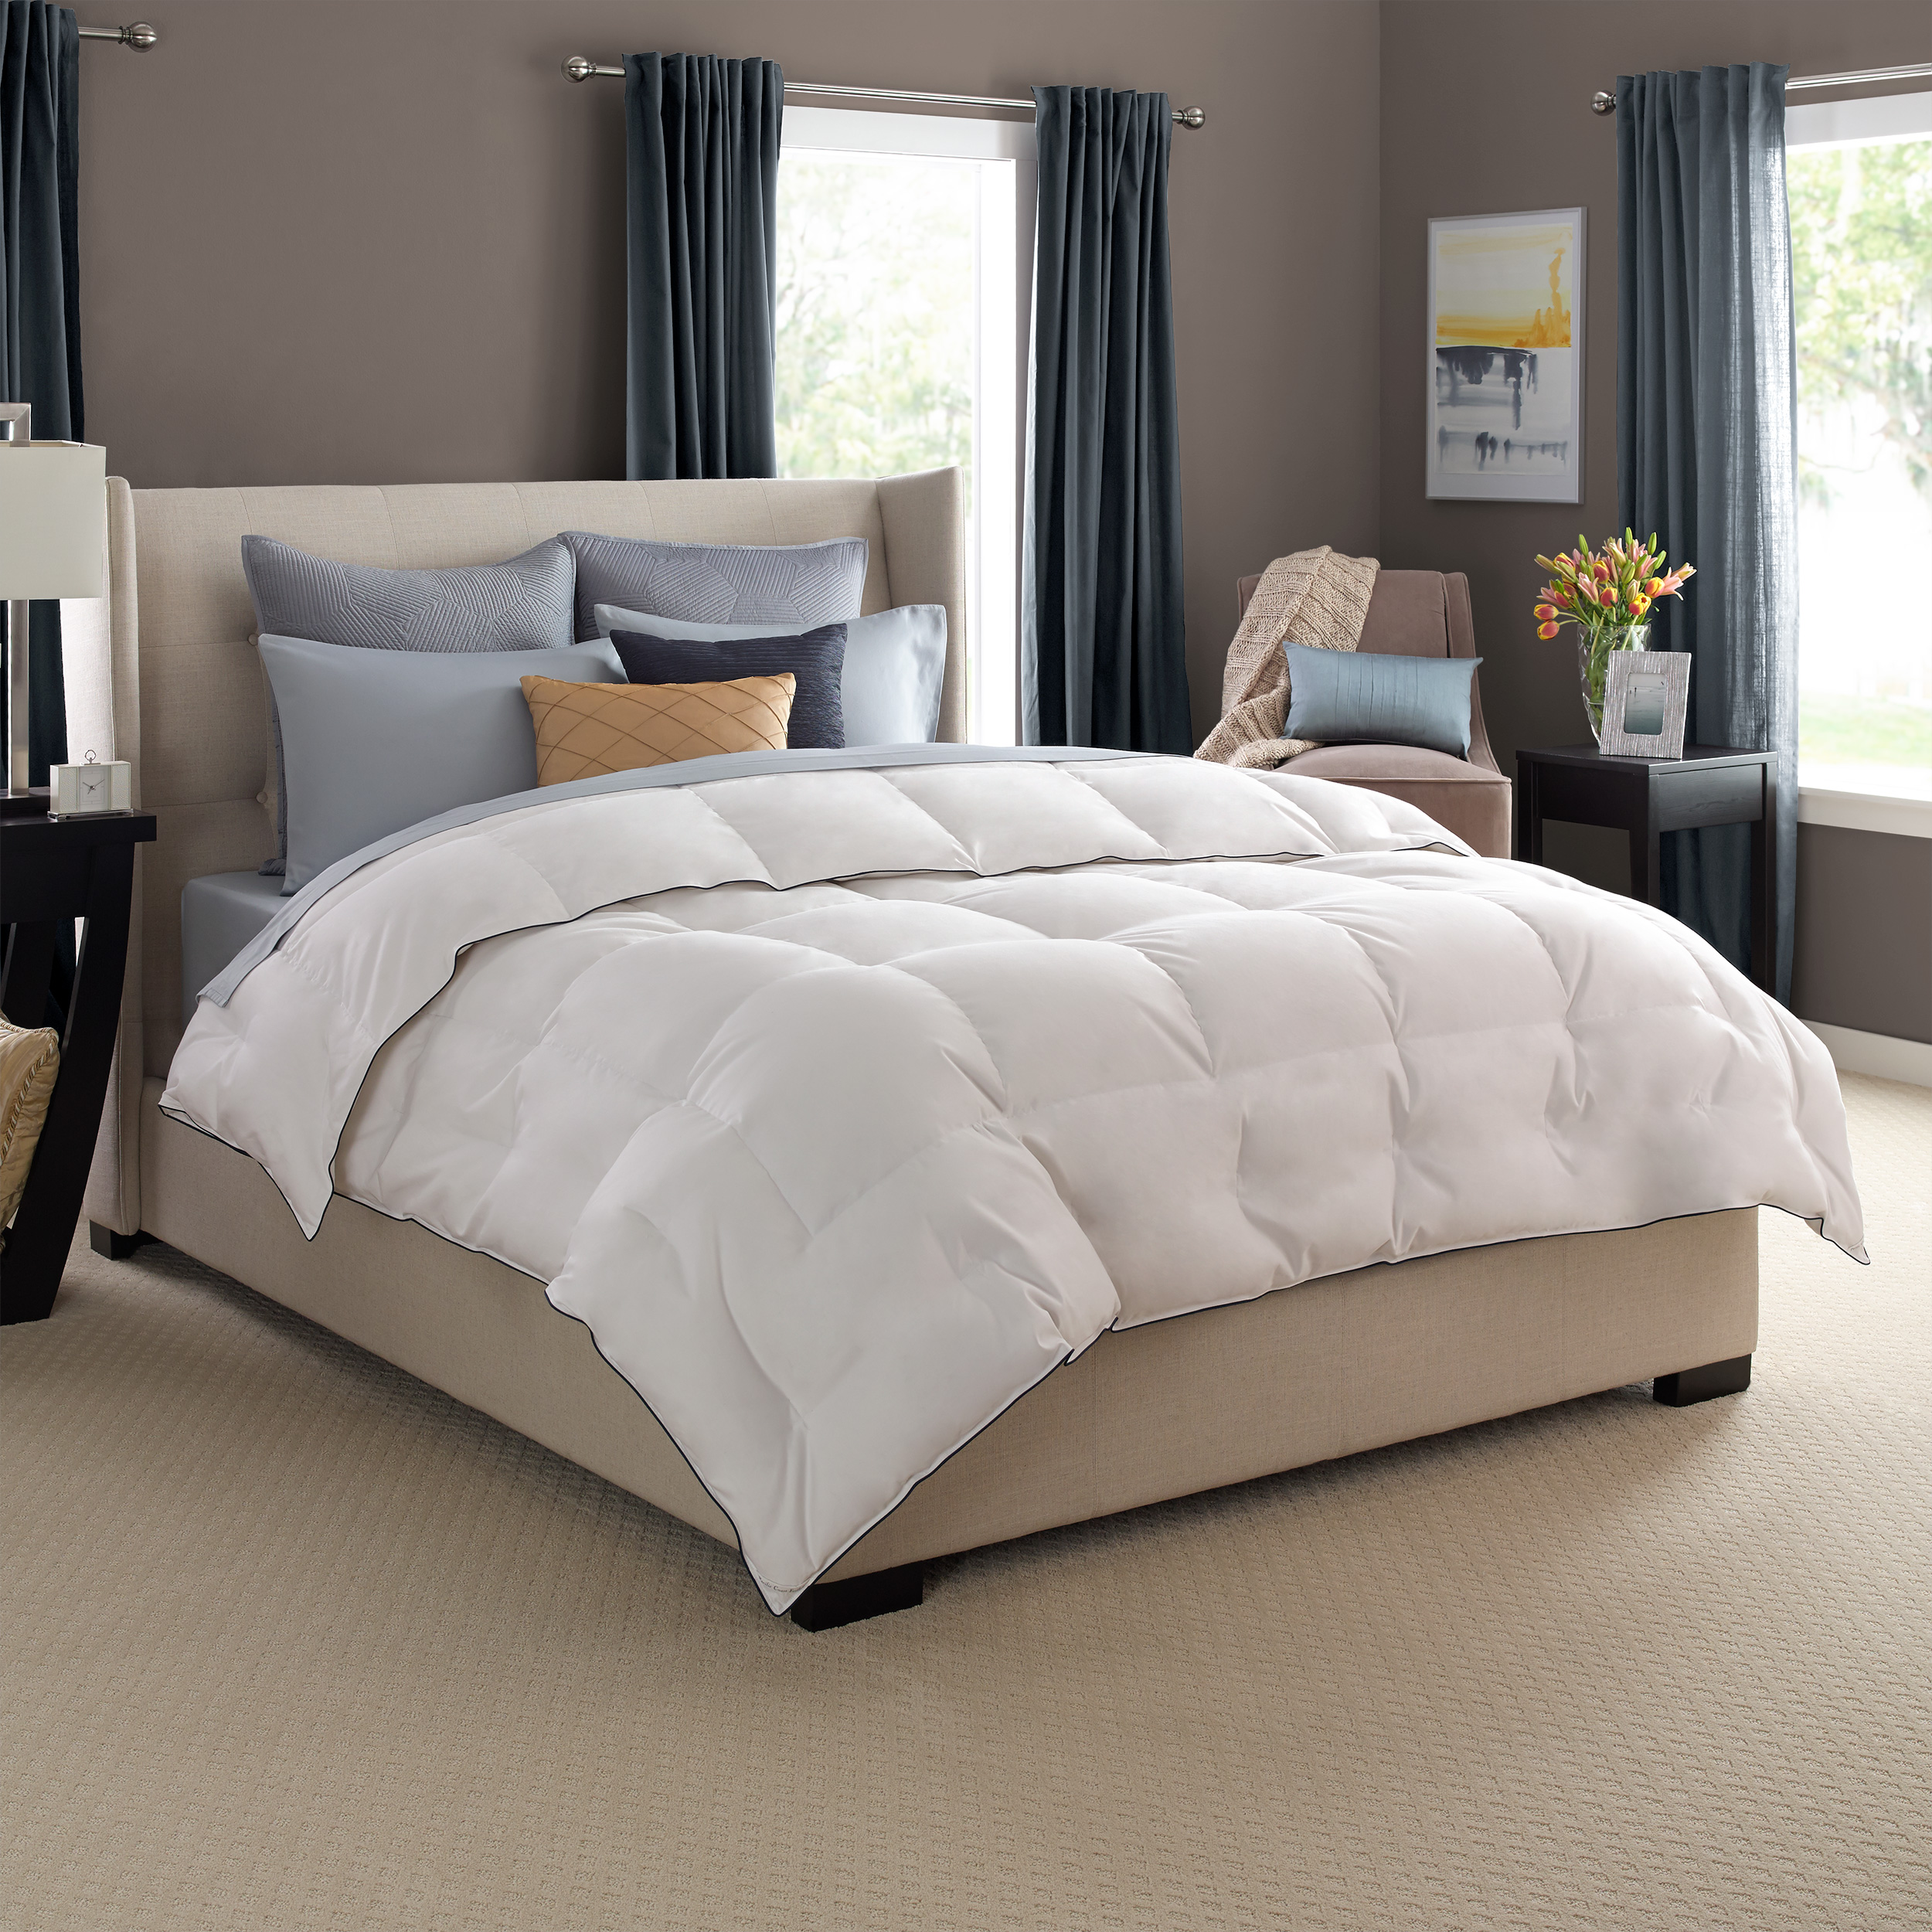 Duvet Vs Comforter Which Is Best For You Homesfeed